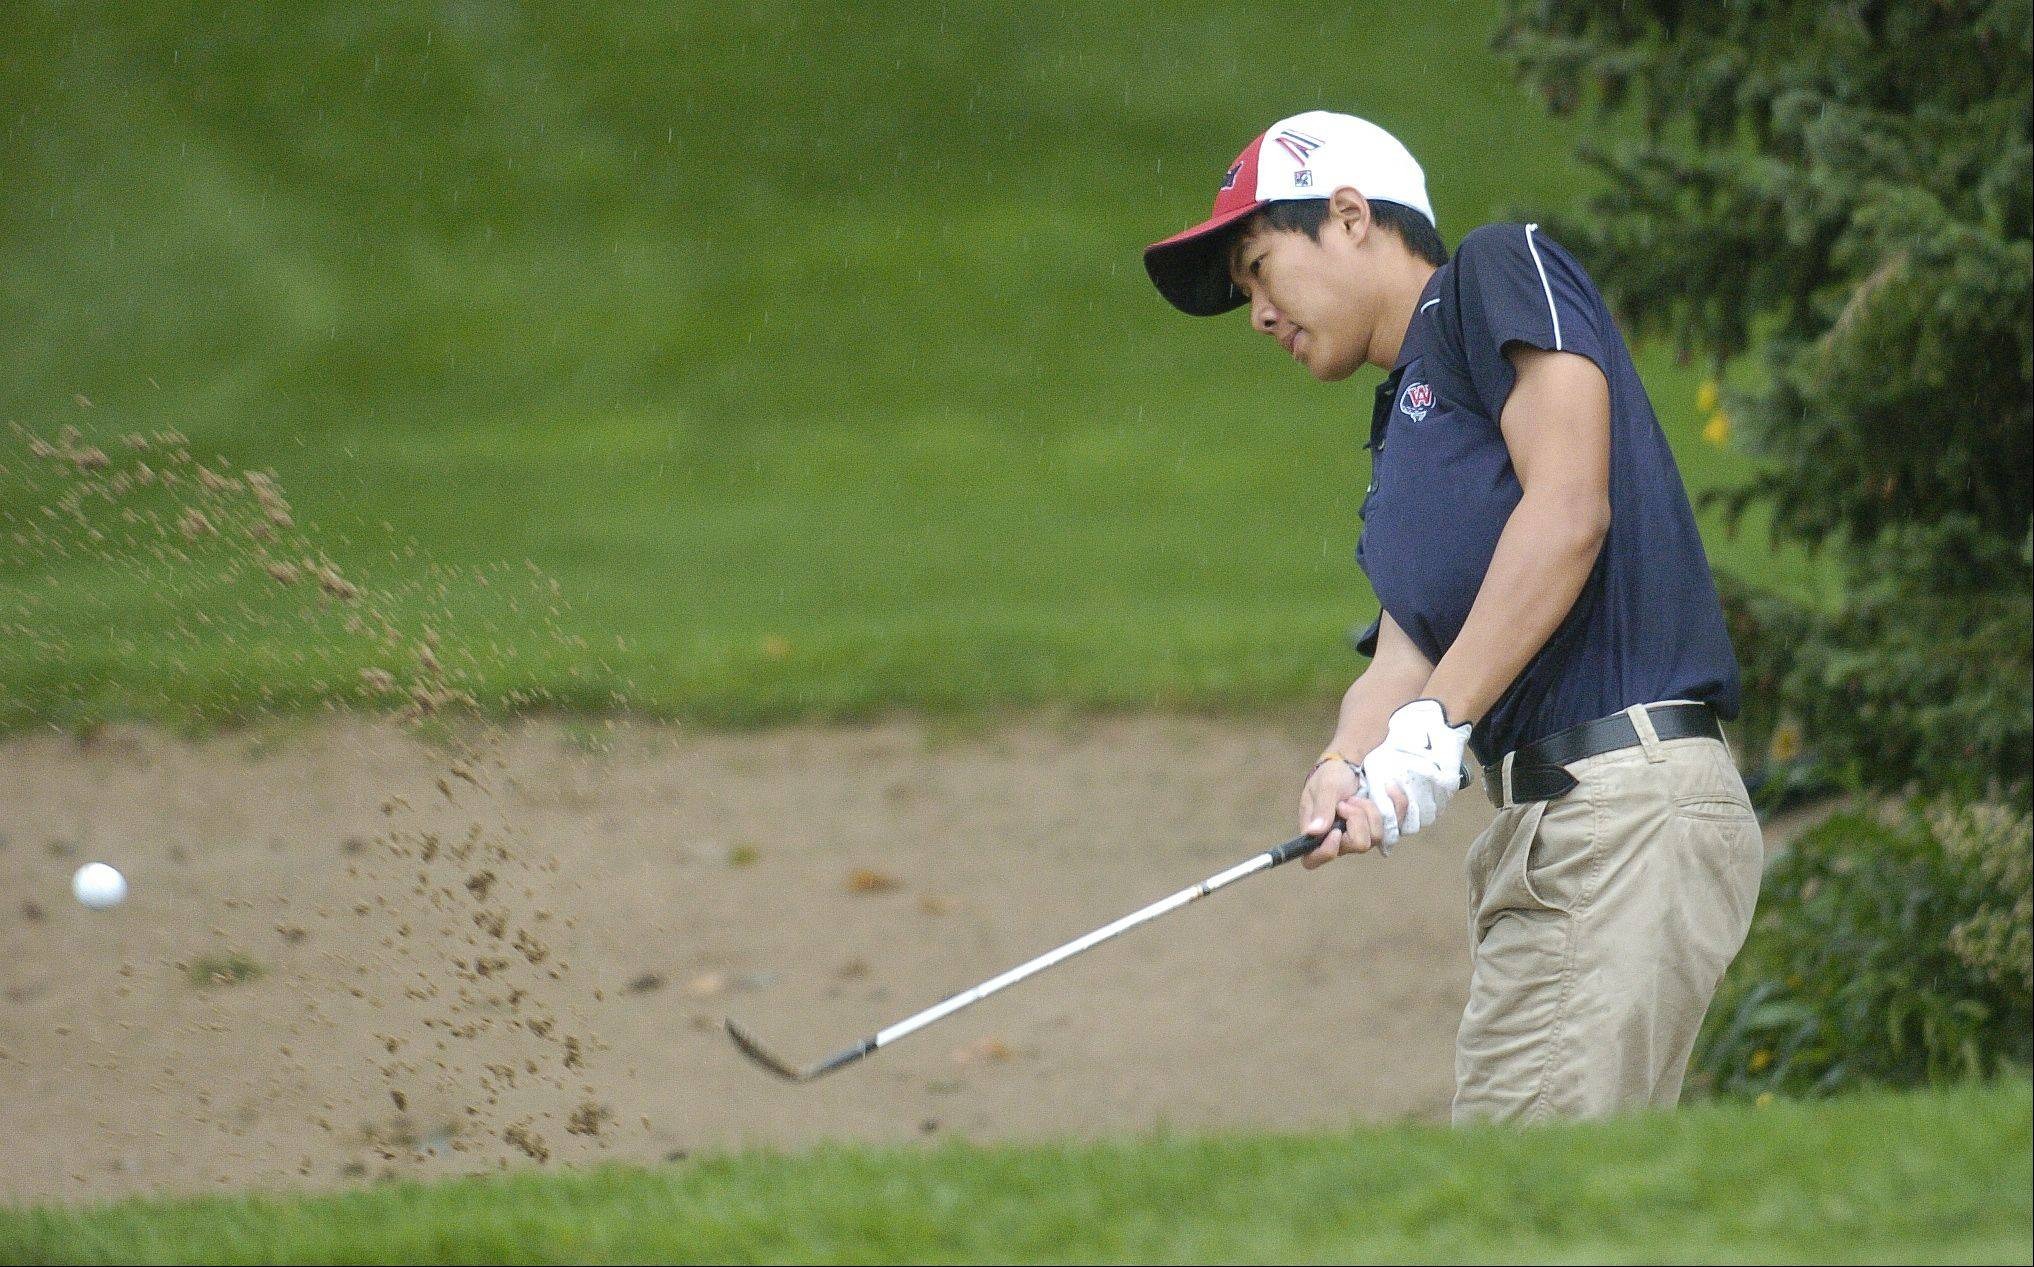 West Aurora�s Piya Teerakanog blasts out of the sand on the 16th hole. Rain briefly halted play in Bartlett Thursday at a DuPage Valley Conference boys golf tournament at Bartlett Hills Golf course.